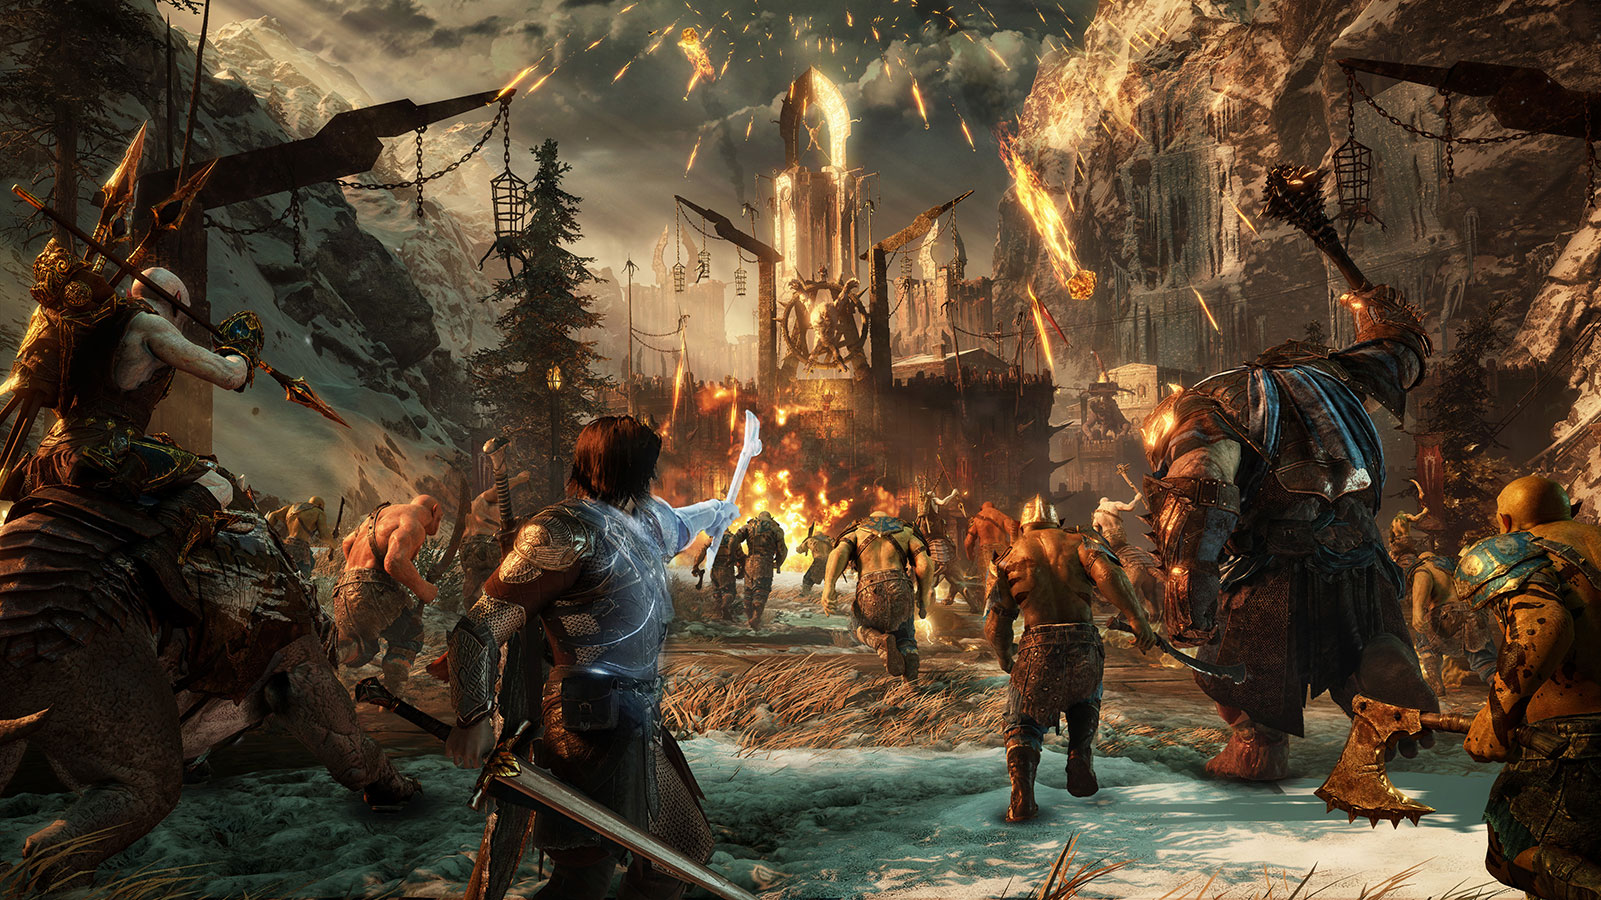 Middle Earth: Shadow of War builds smartly on its predecessor, but is still left wanting in areas